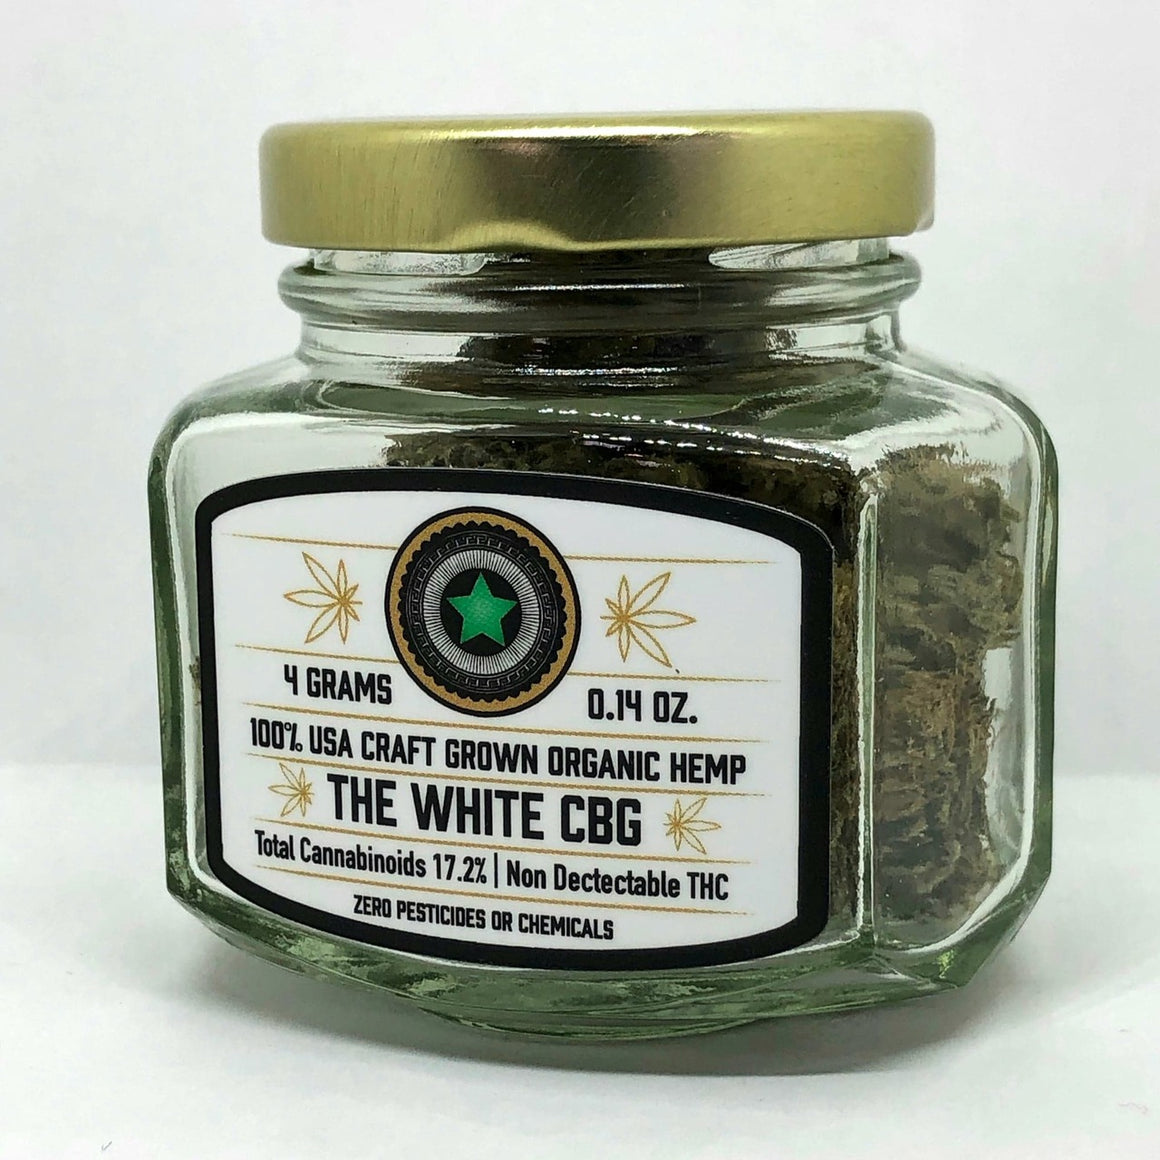 Helping Friendly  CBD Hemp Flower - The White CBG at Modest Hemp Co.